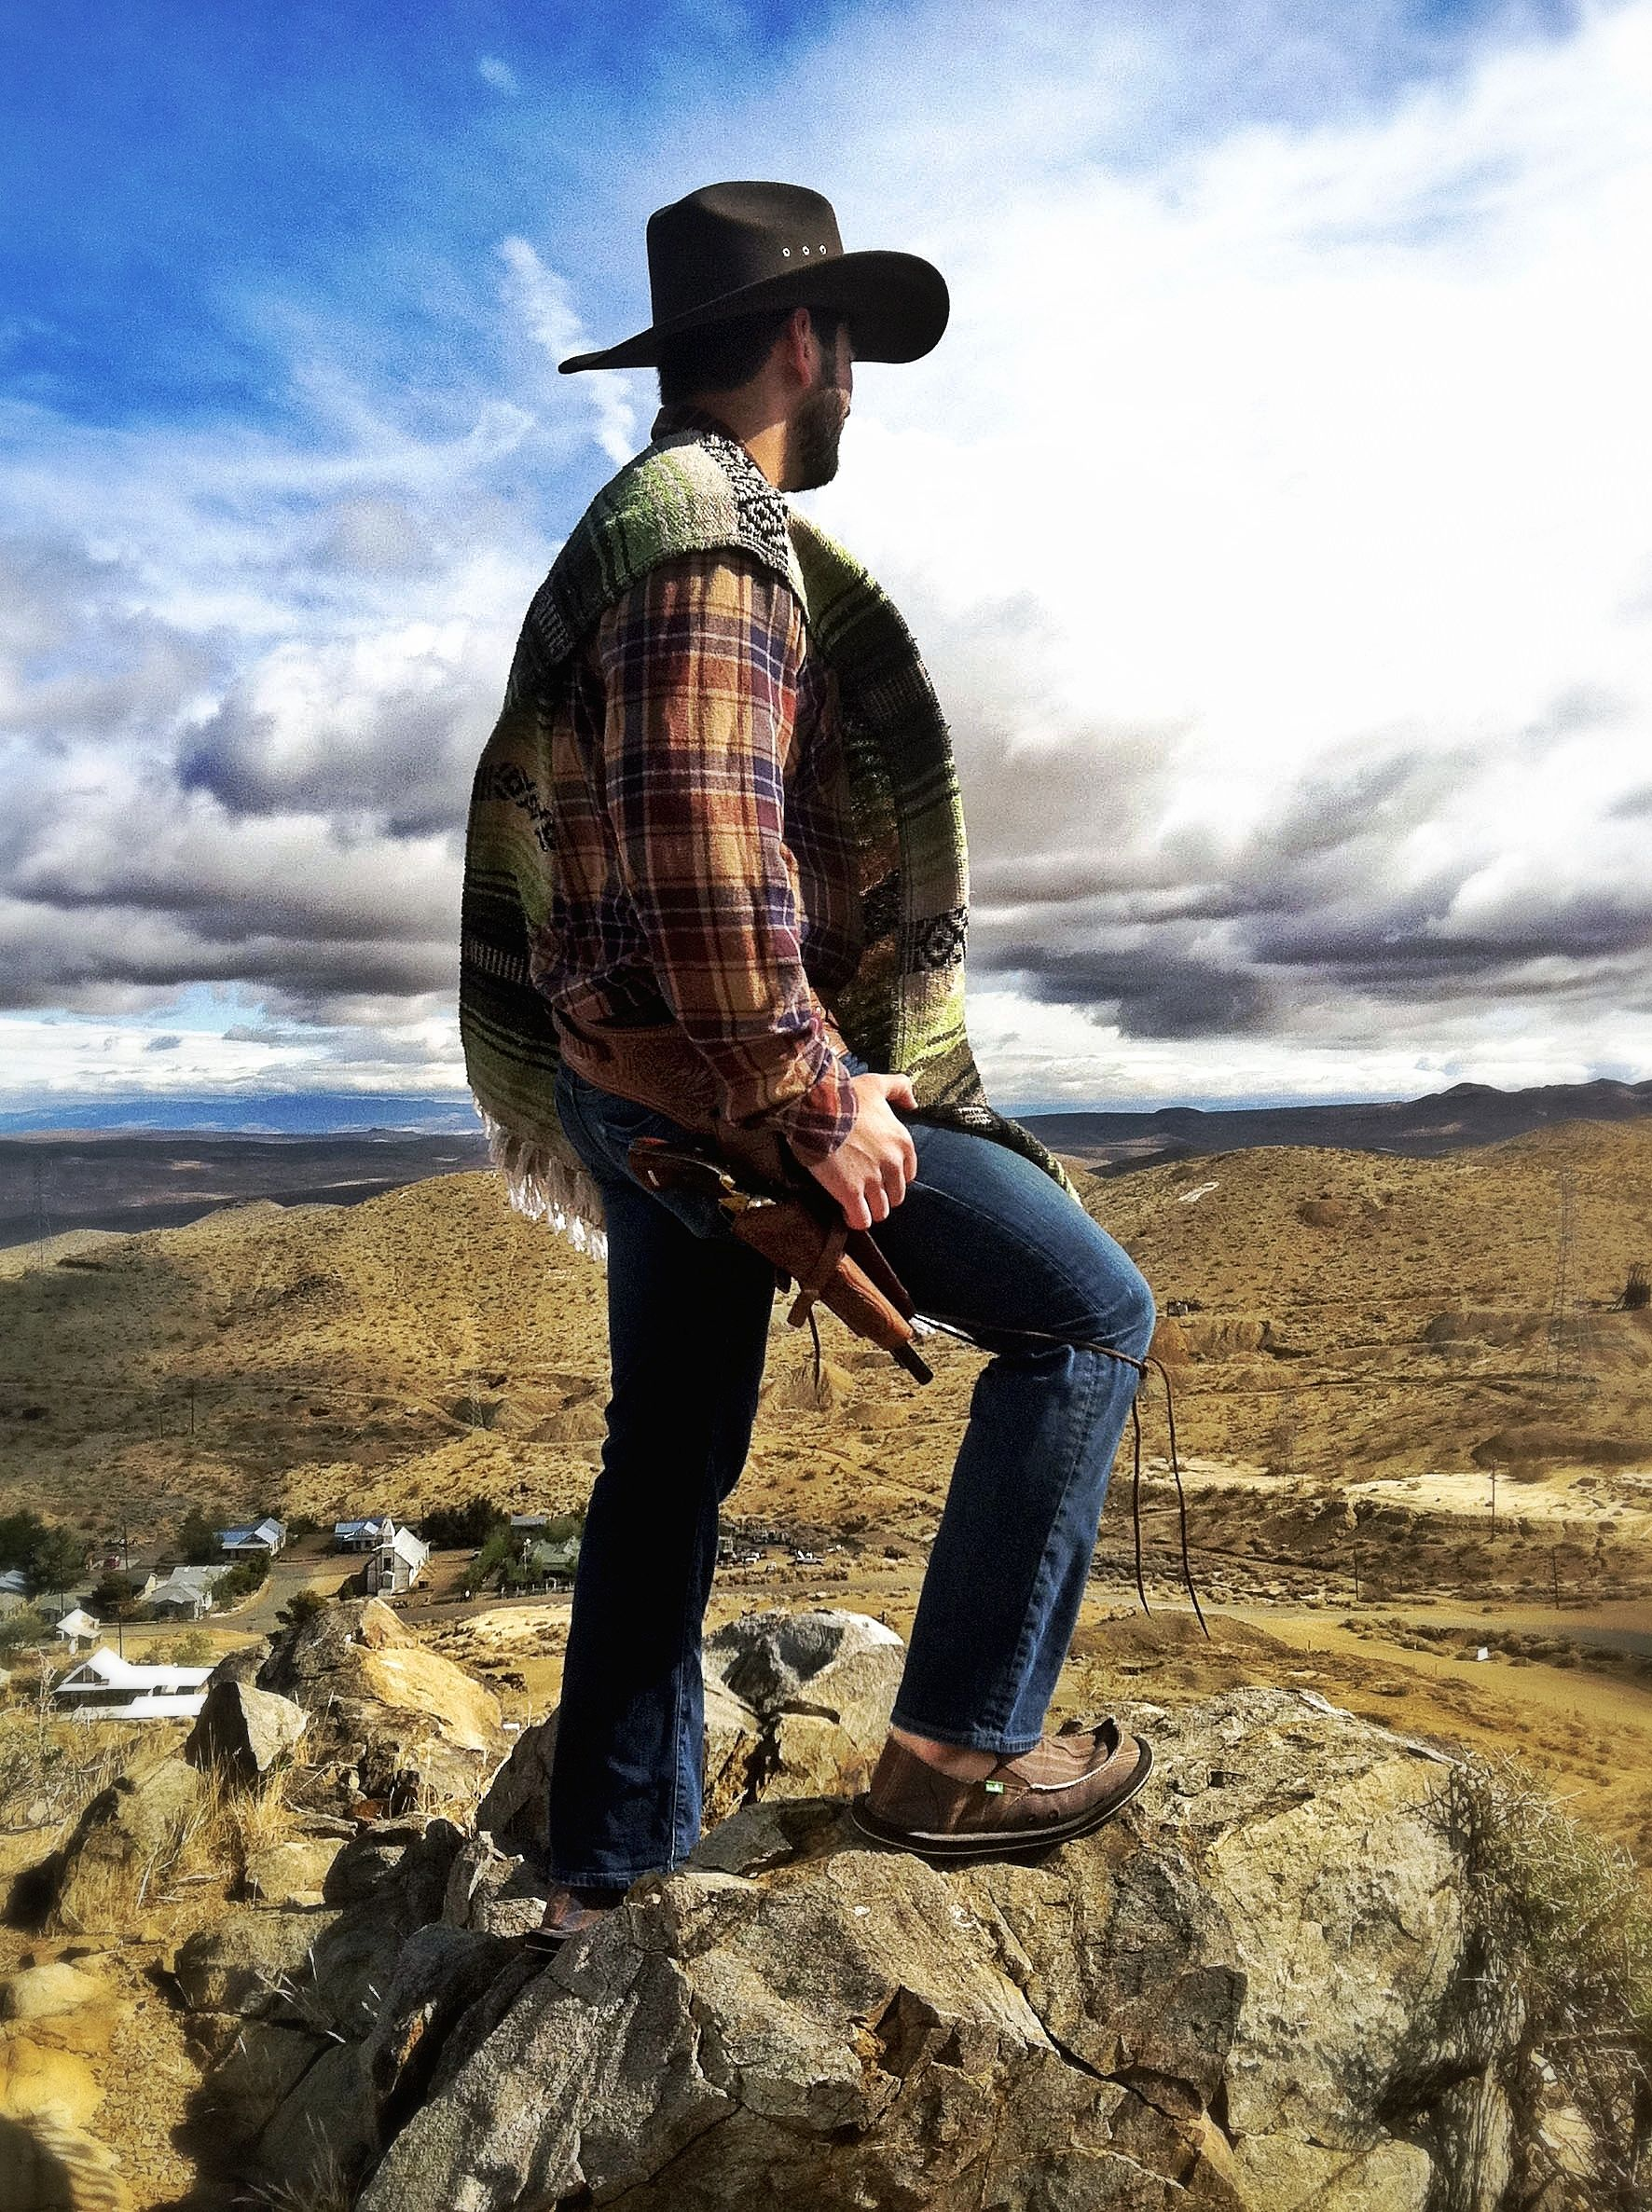 When in Rome, -er the Middle of Nowhere...? On location for Sanukified Western Spoof.